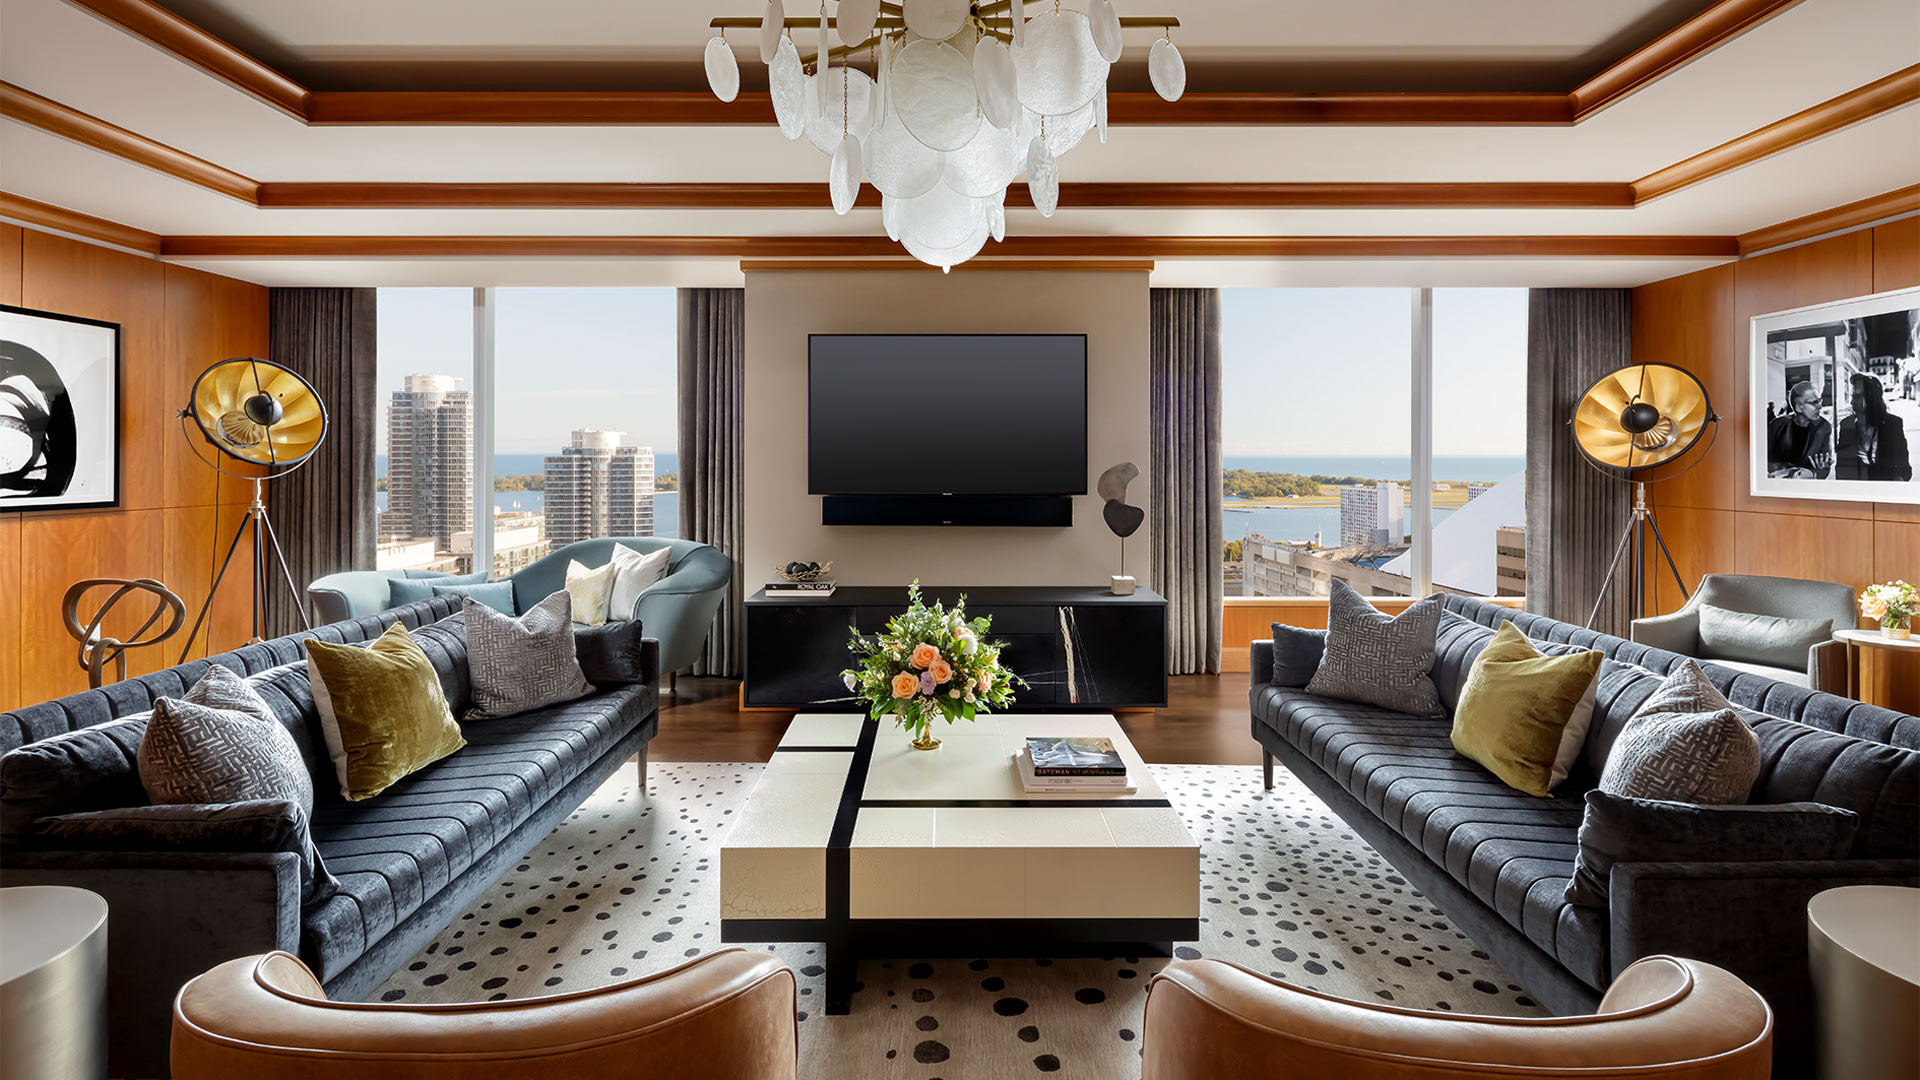 The Ritz-Carlton Hotel Toronto | Living room suite overlooking the lake